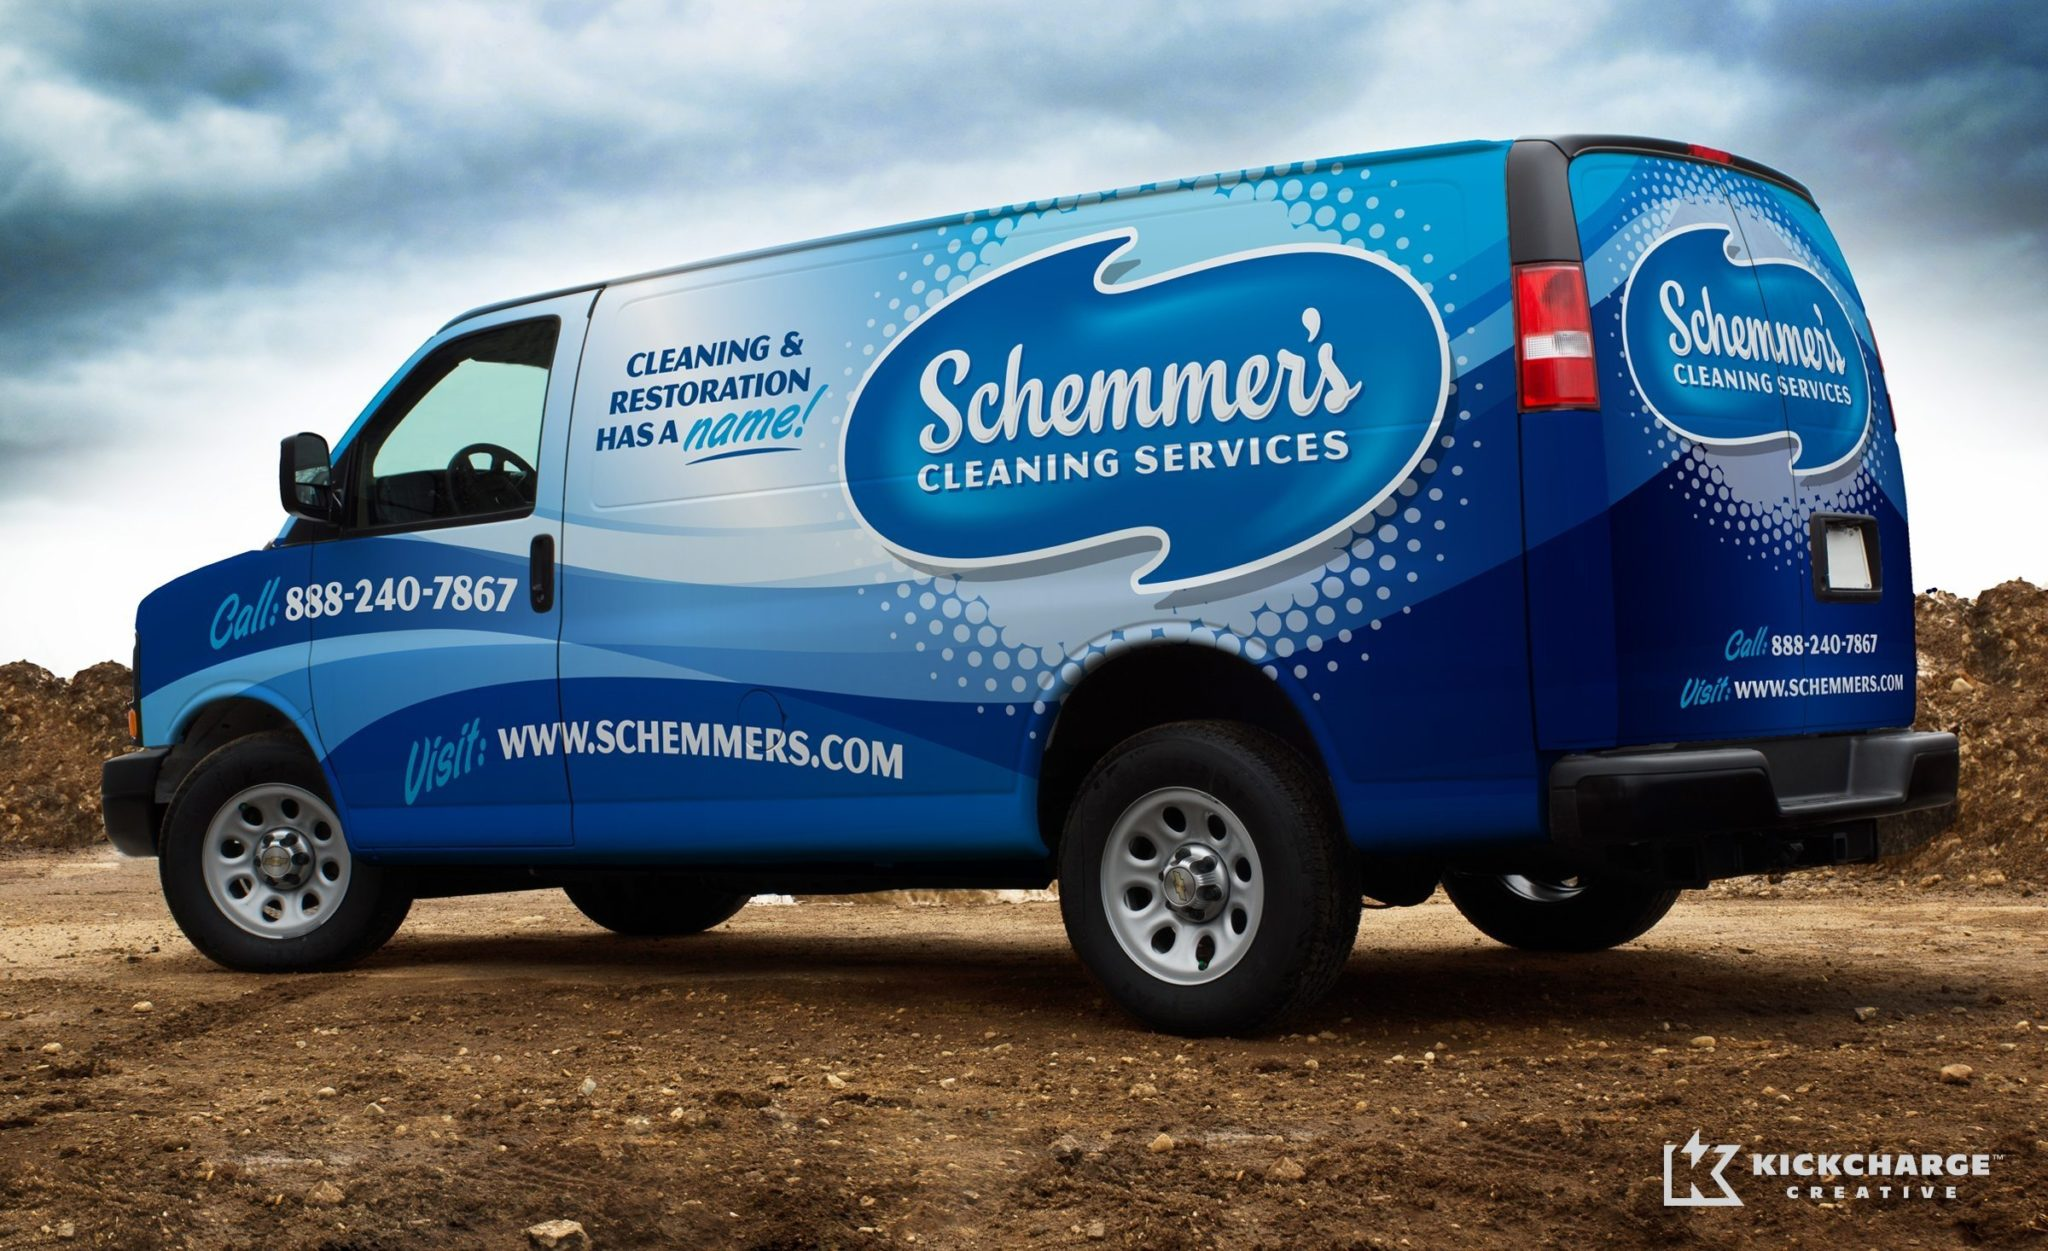 Vehicle wrap design for a cleaning service located in Two Harbors, MN.